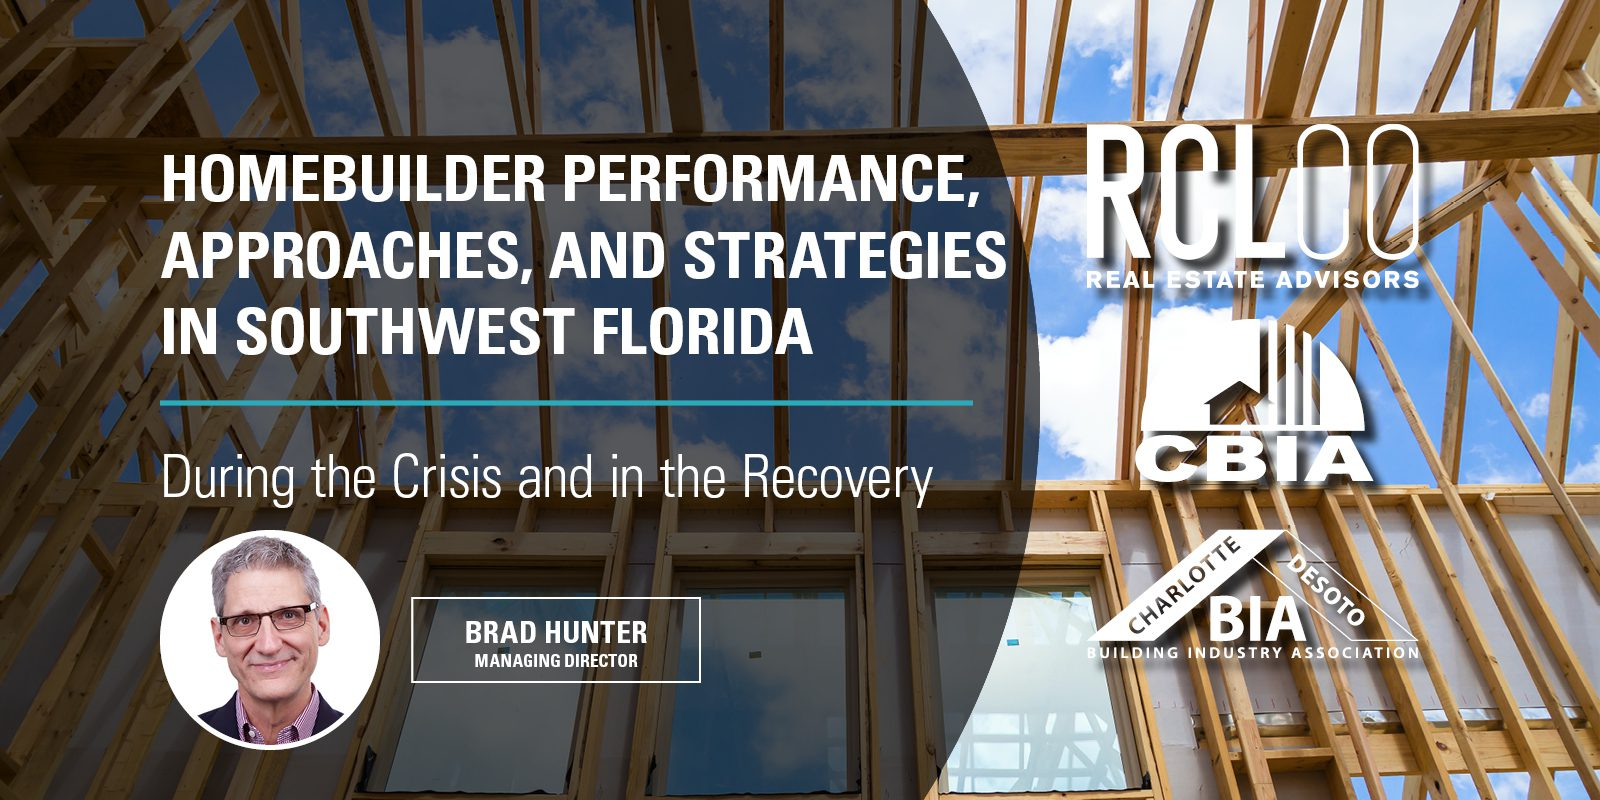 Homebuilder Performance and Strategies in Southwest Florida